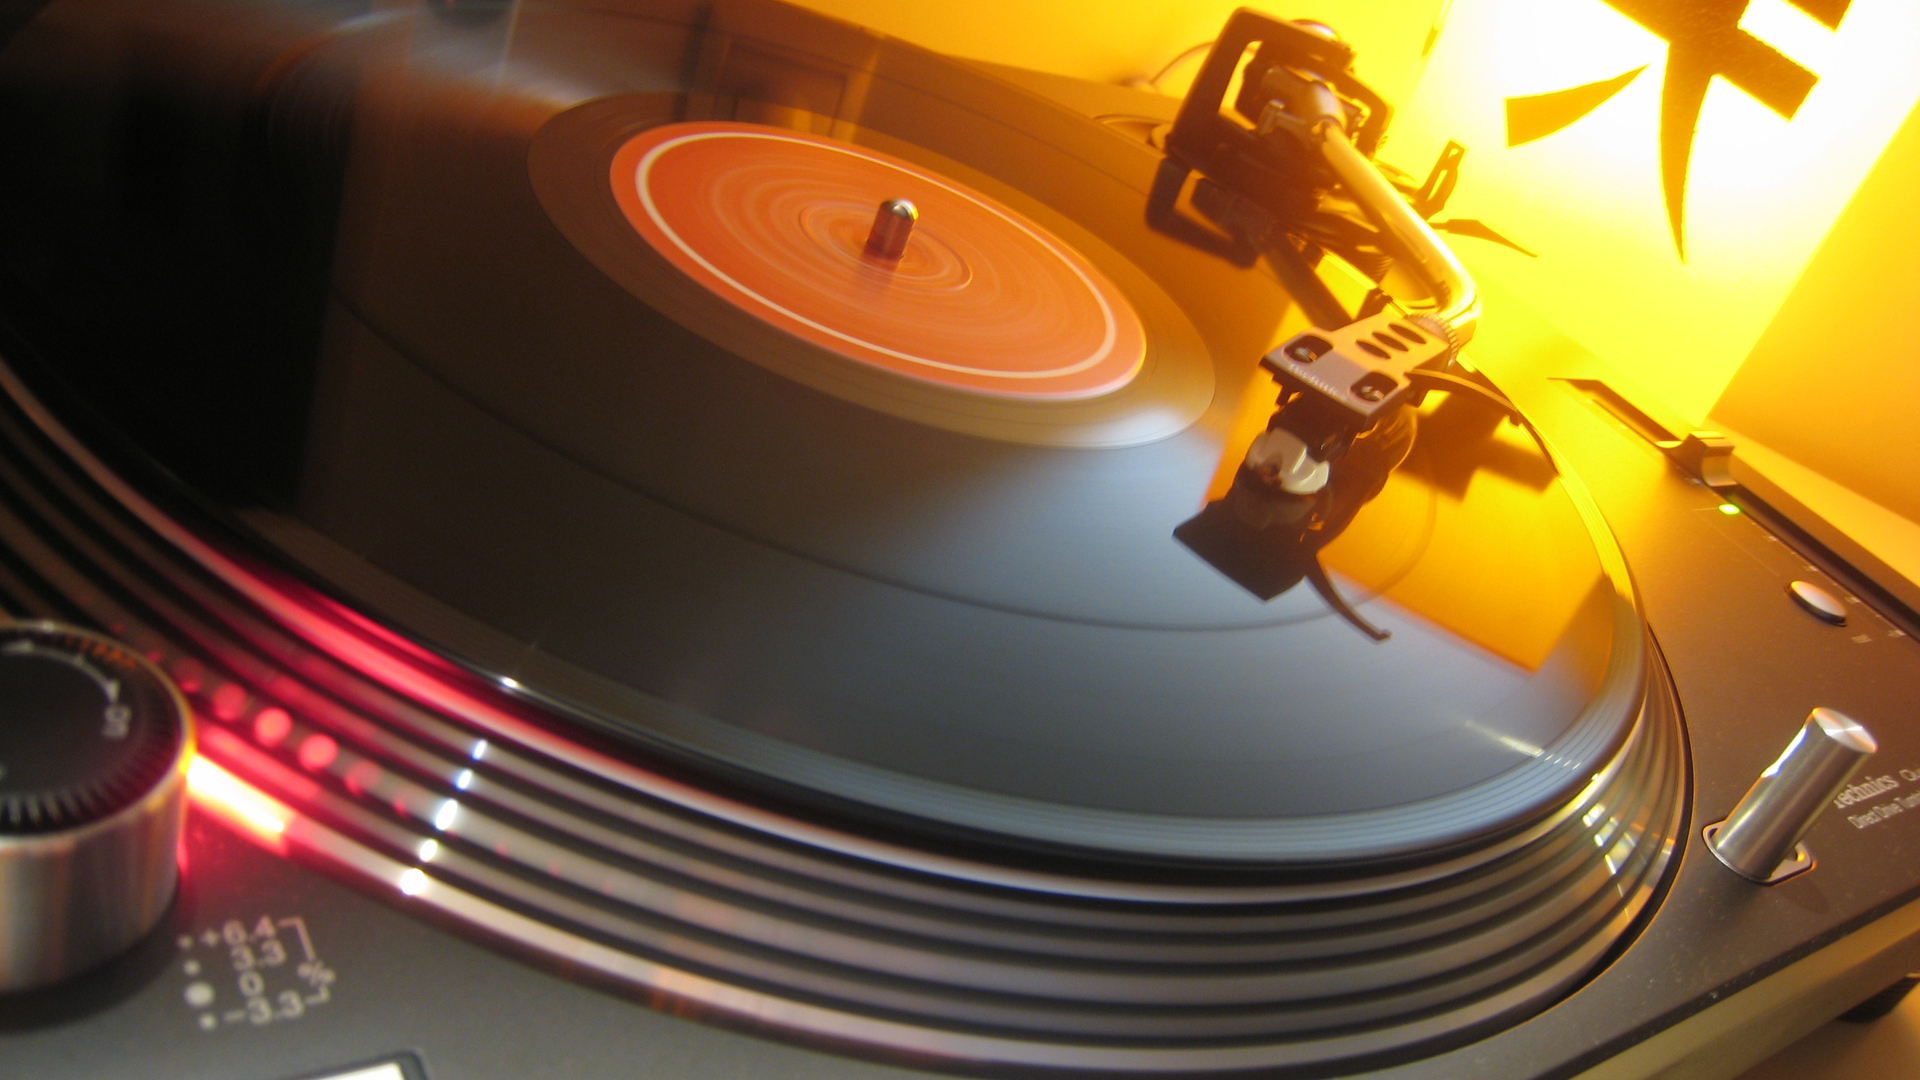 Cool Turntable Wallpaper